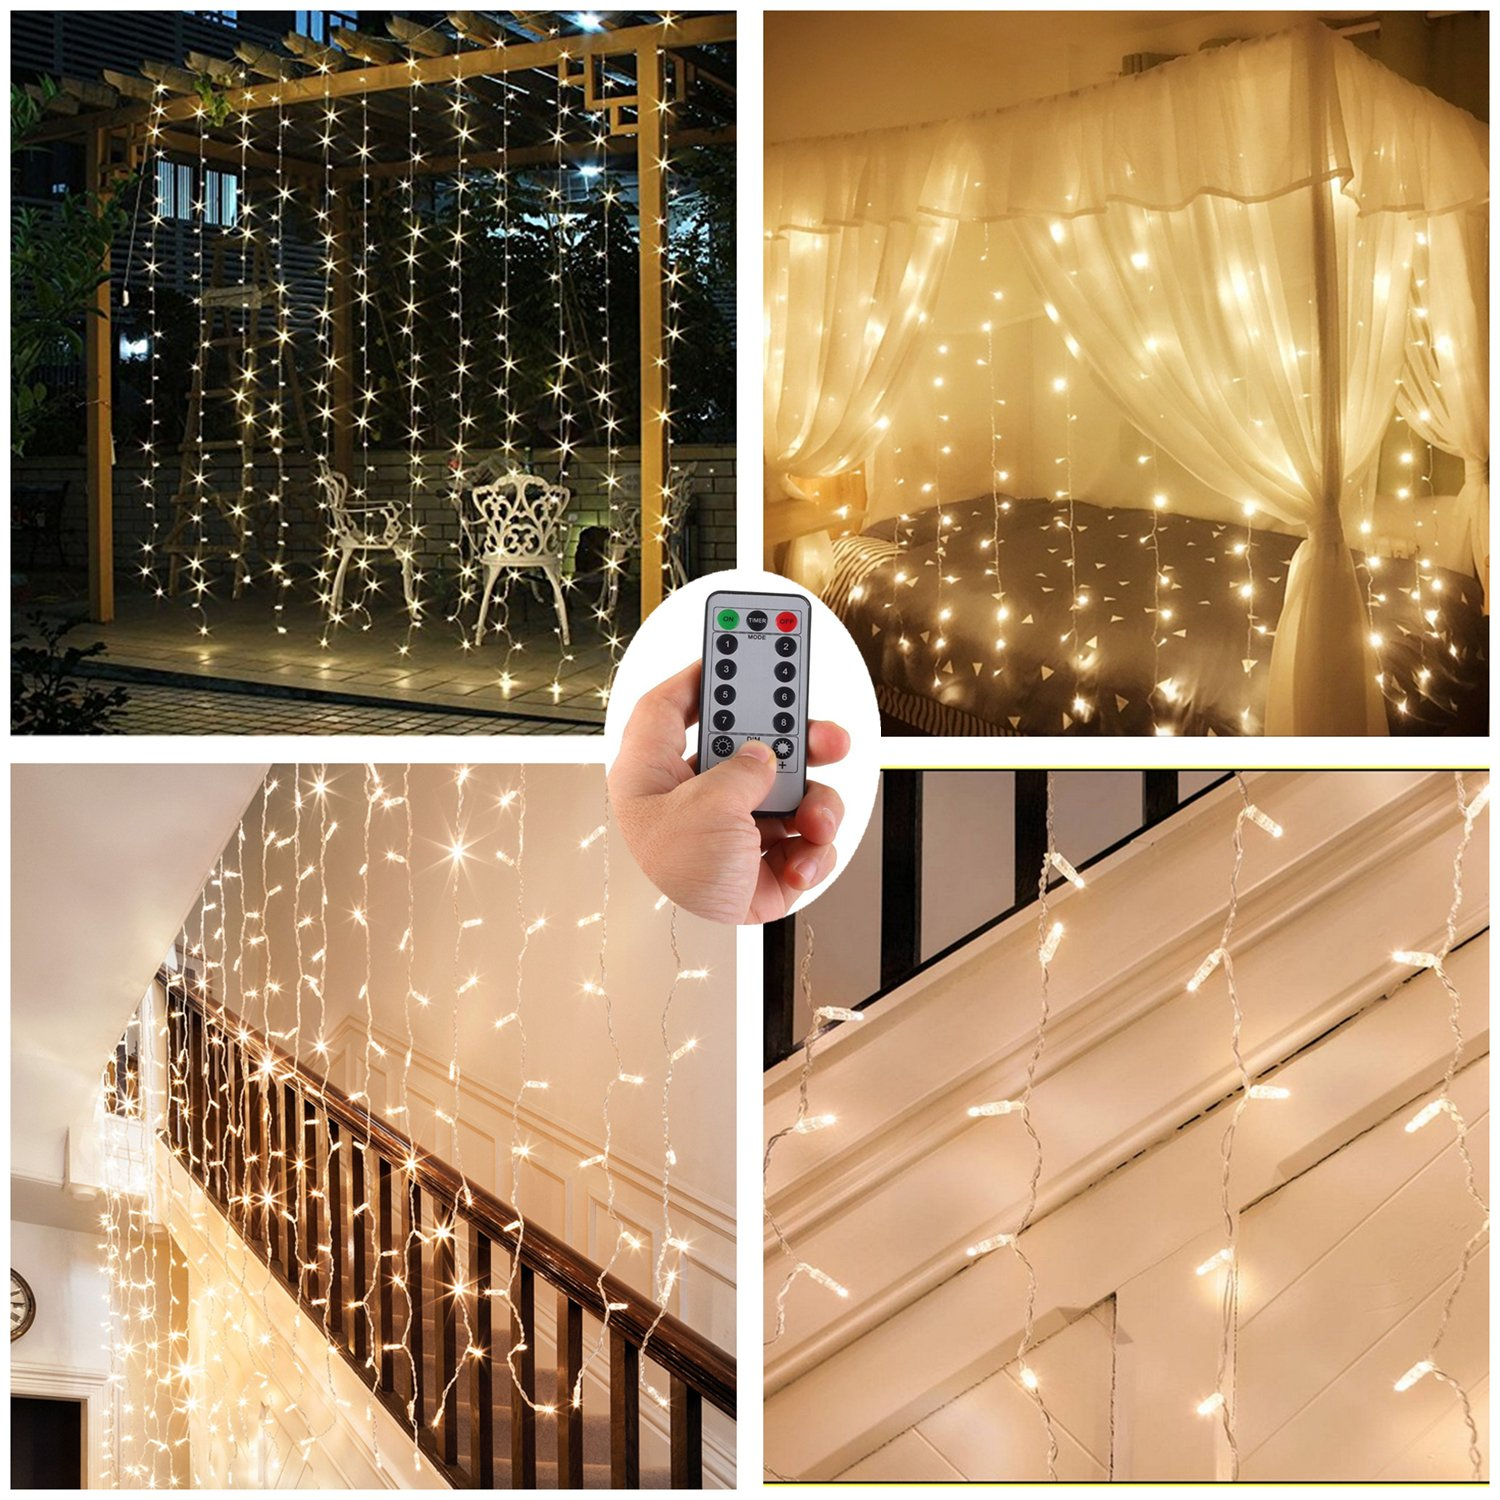 DealBeta [2 in 1] Battery/USB Operated Curtain Window Lights for Wedding Outdoor,9.8 ft ×9.8 ft 300 LED Twinkle Icicle Background String Lights - Warm White